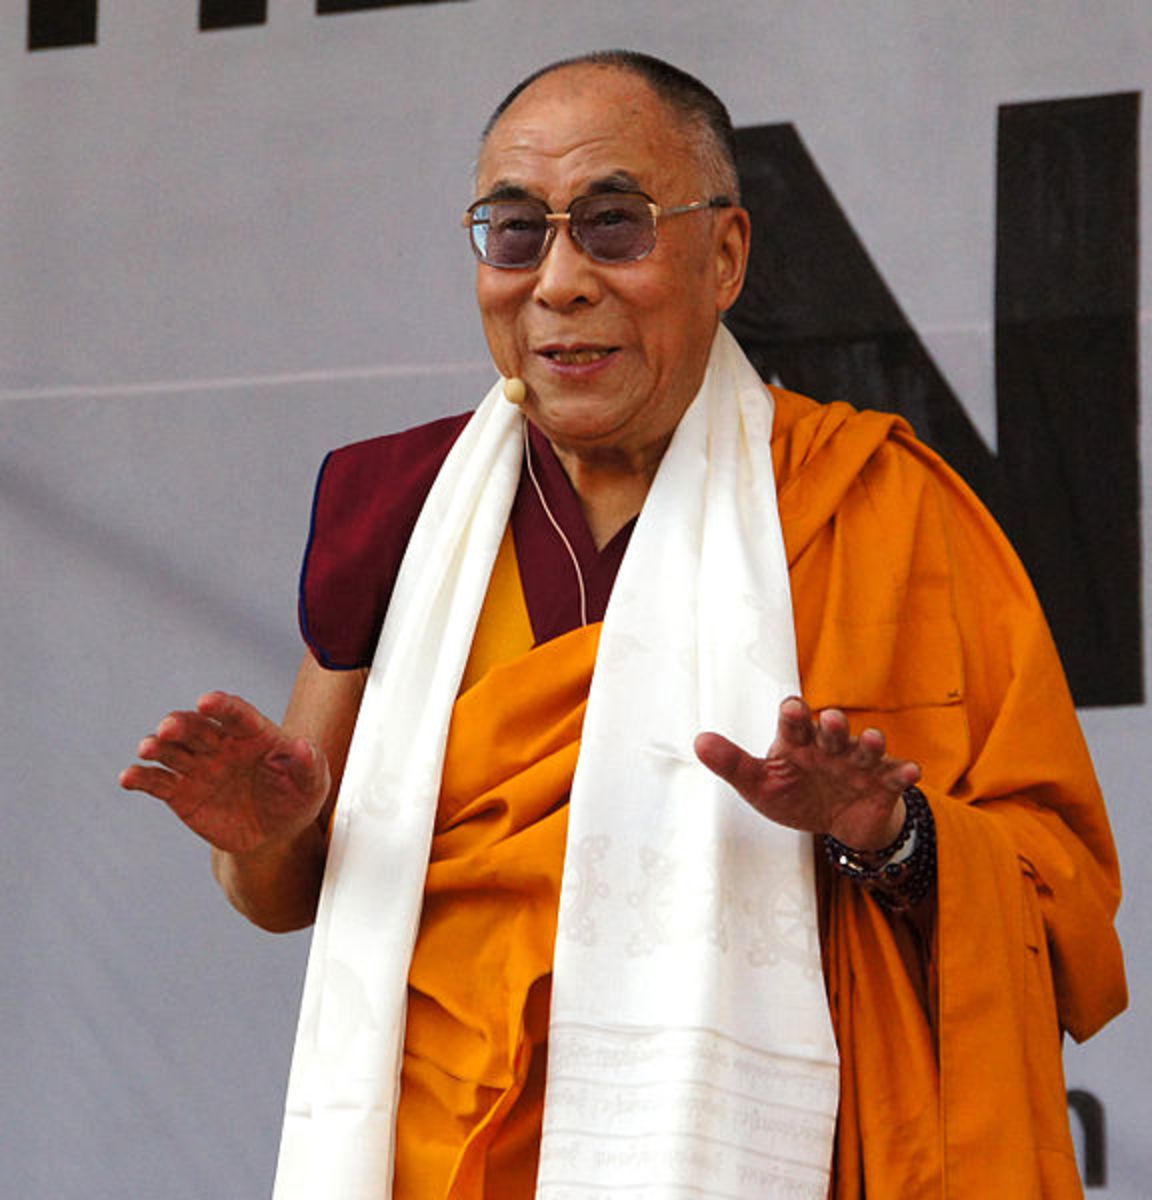 The 14th Dalai Lama is about to hold a speech in Vienna, Austria.